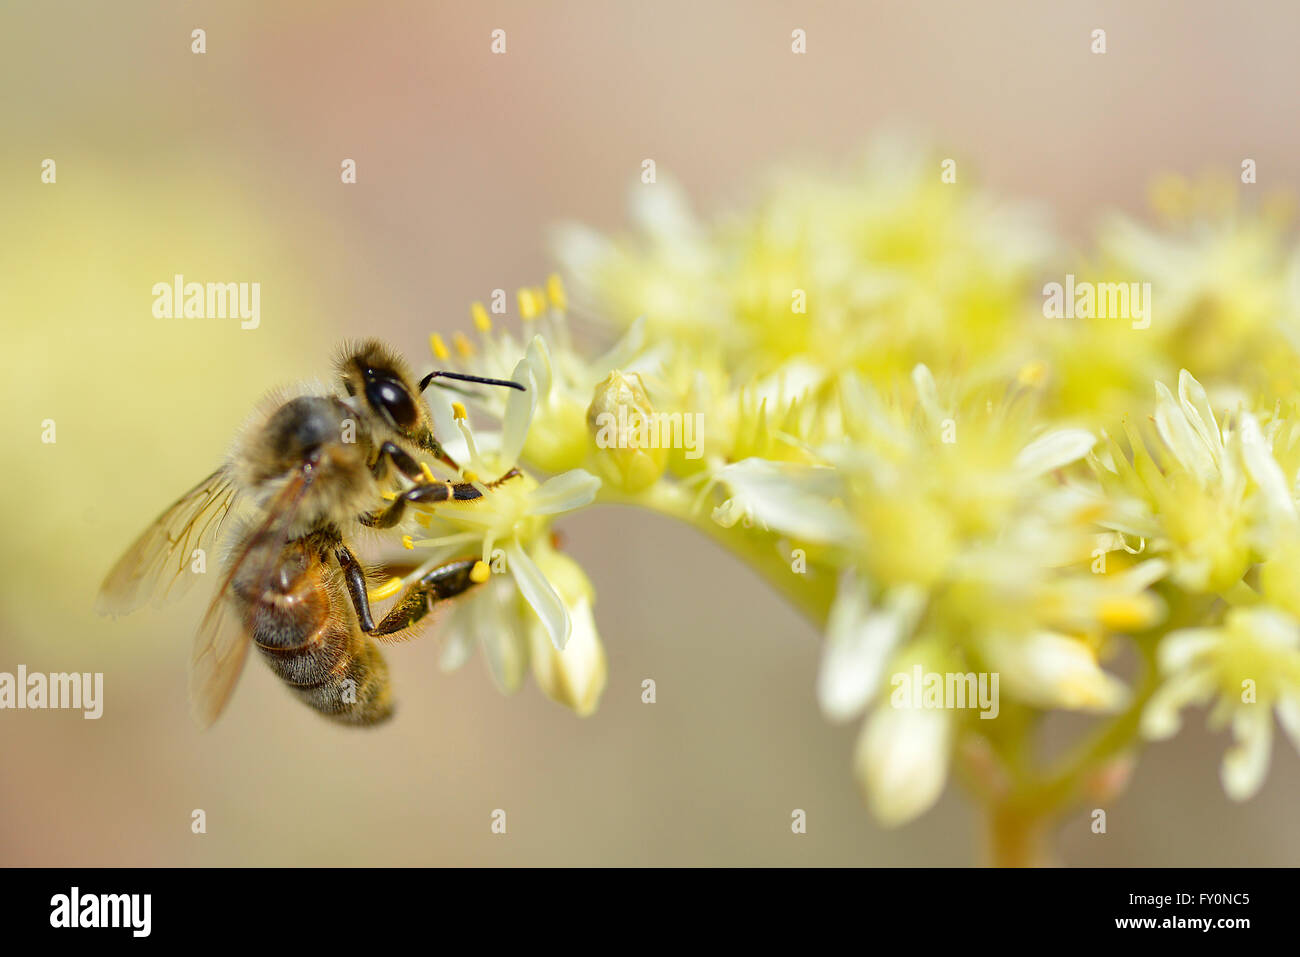 Macro of honey bee (Apis) feeding on yellow flower seen from profile - Stock Image